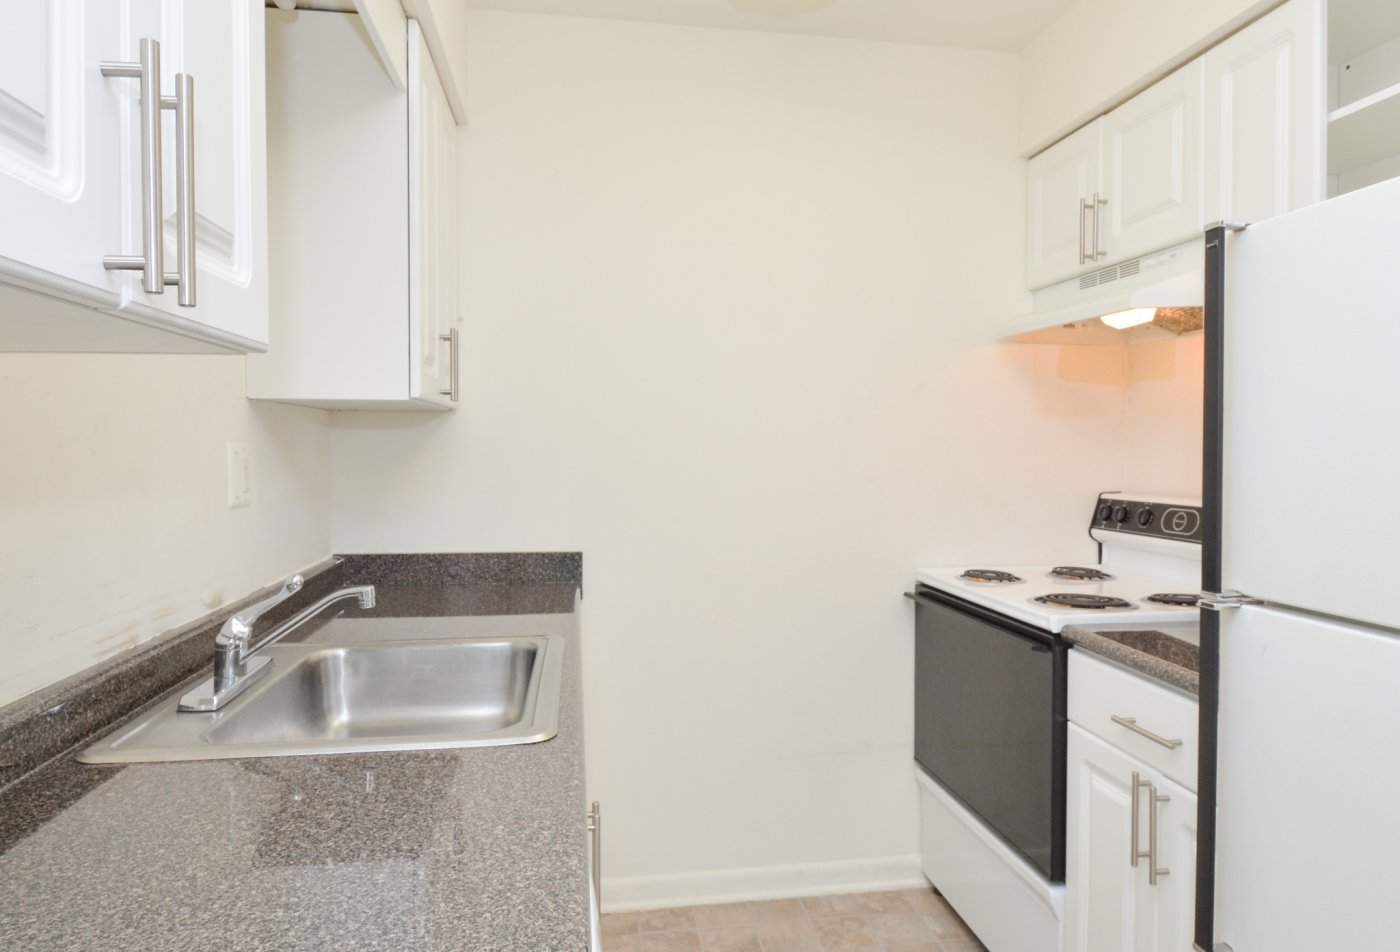 State-of-the-Art Kitchen | Boothwyn PA Apartment Homes | Rolling Glen Townhomes and Apartments